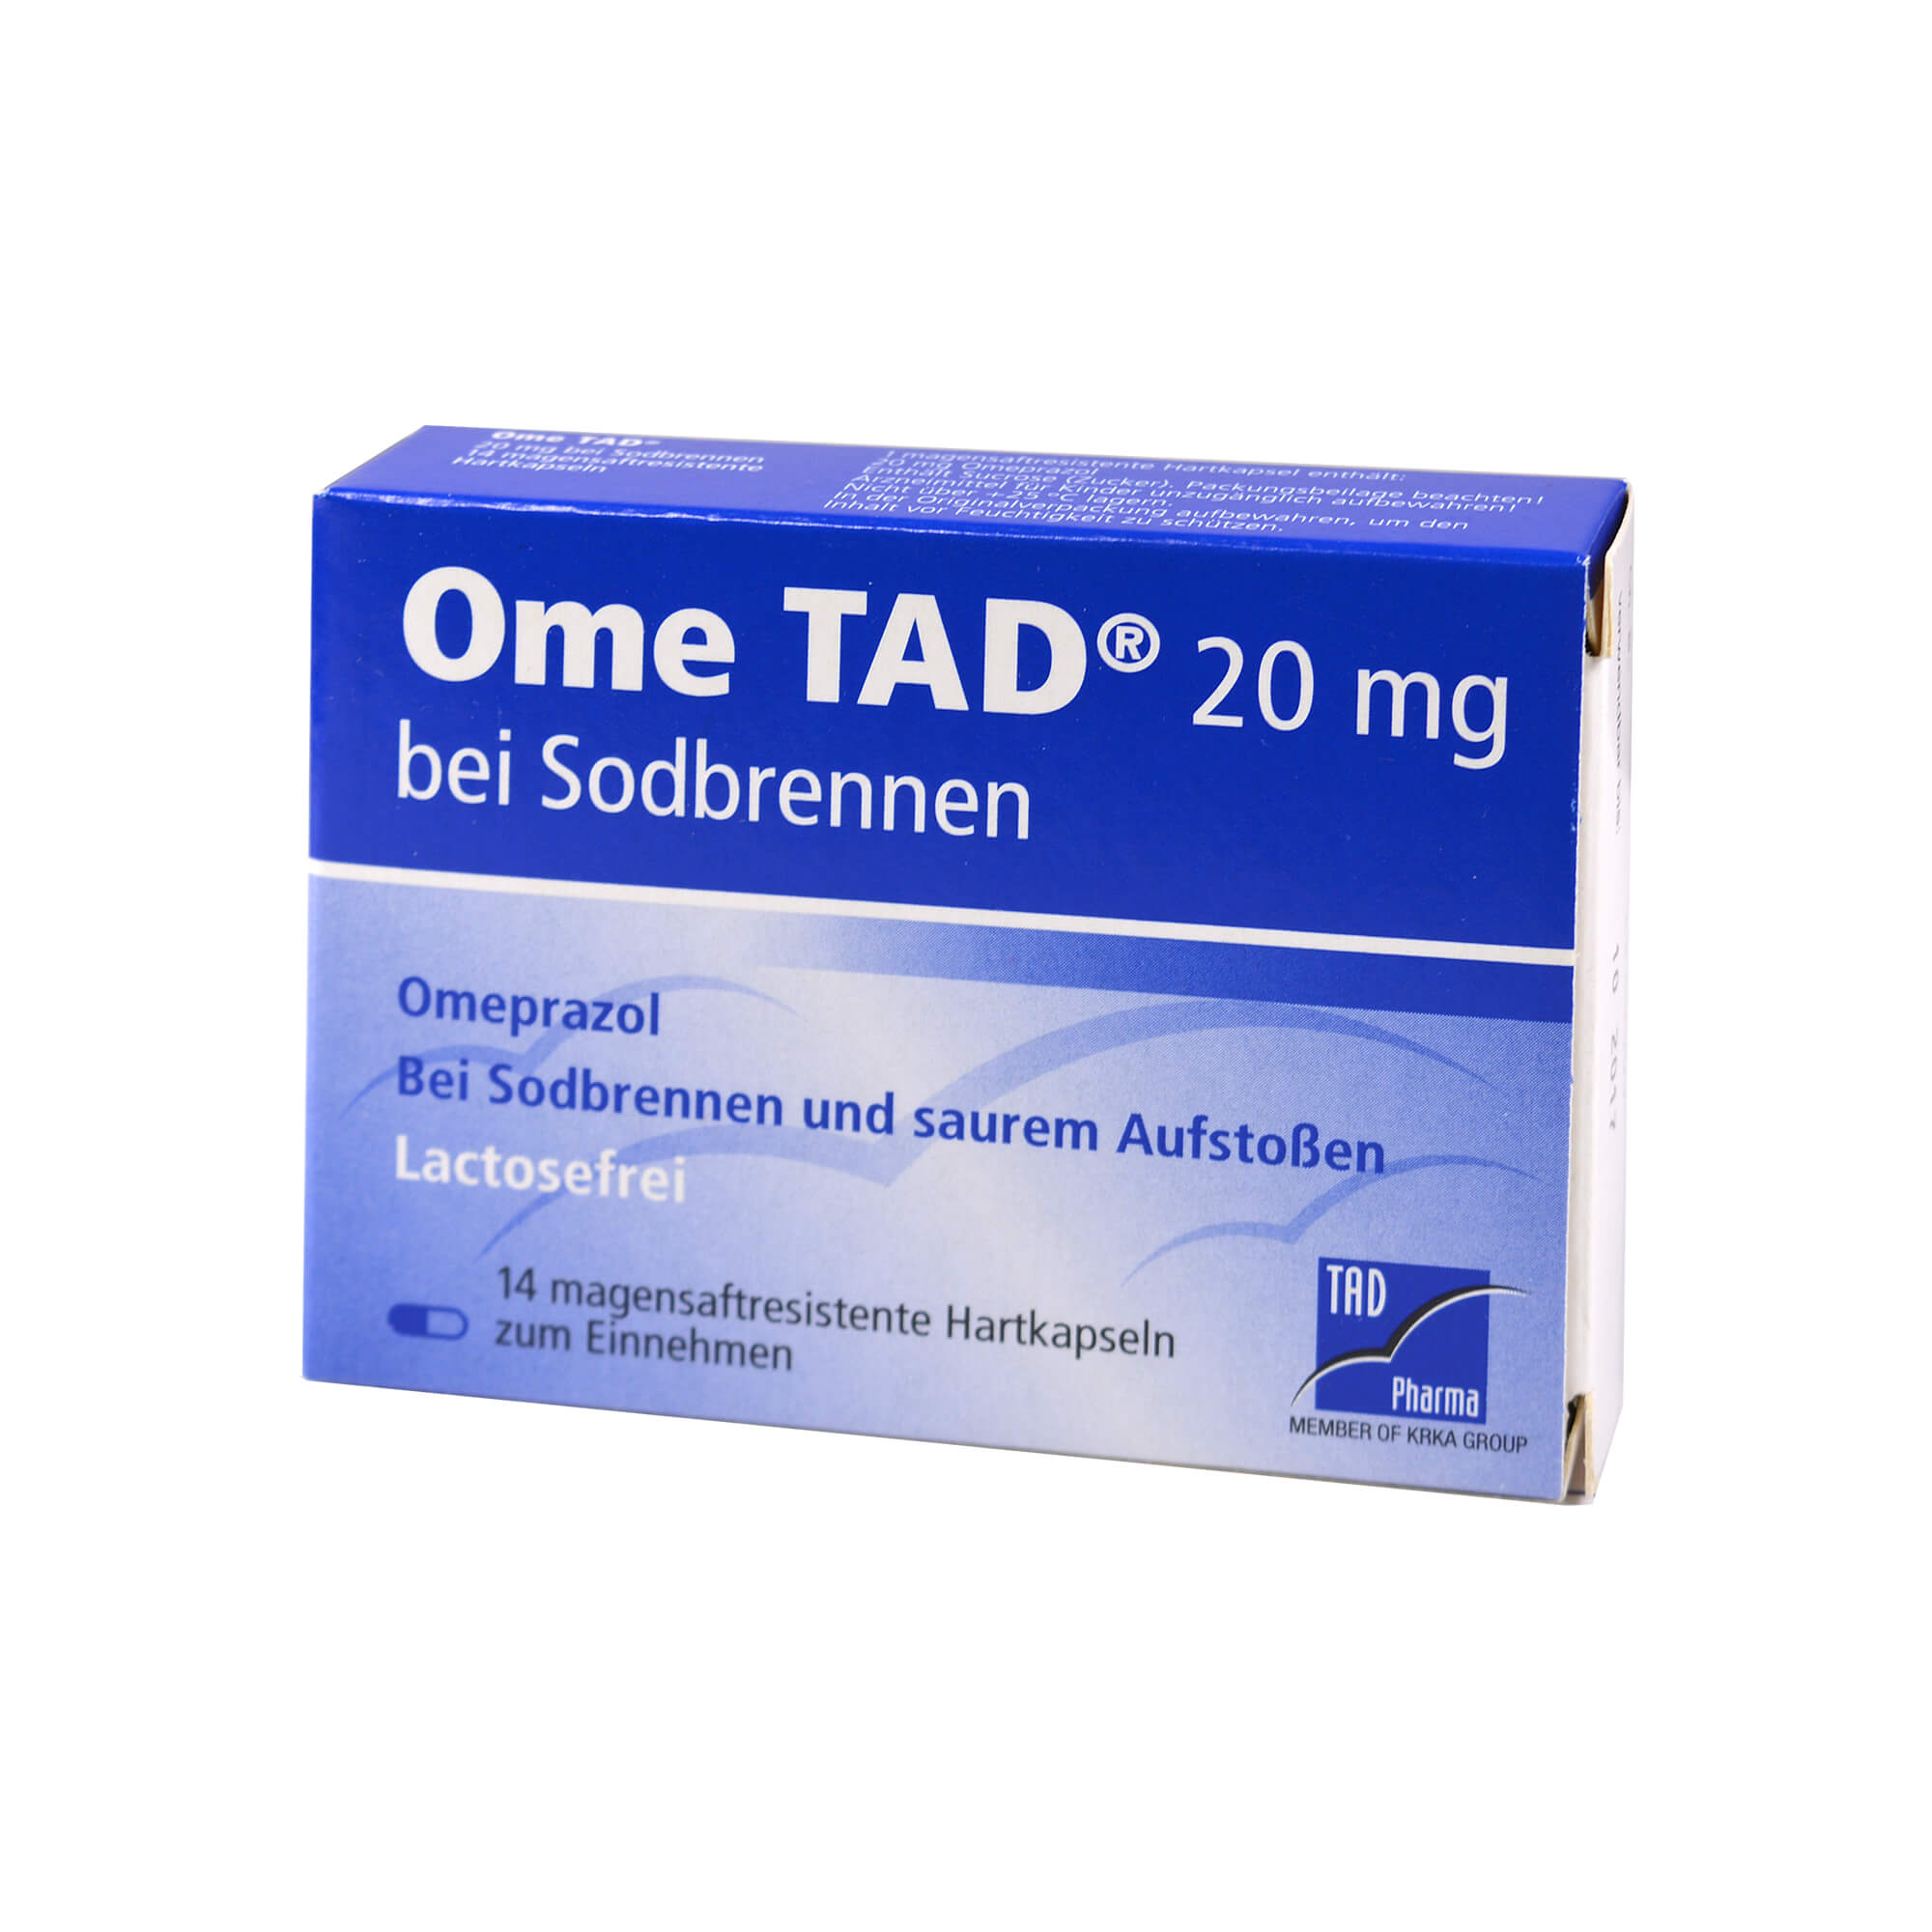 Ome Tad 20mg bei Sodbrennen